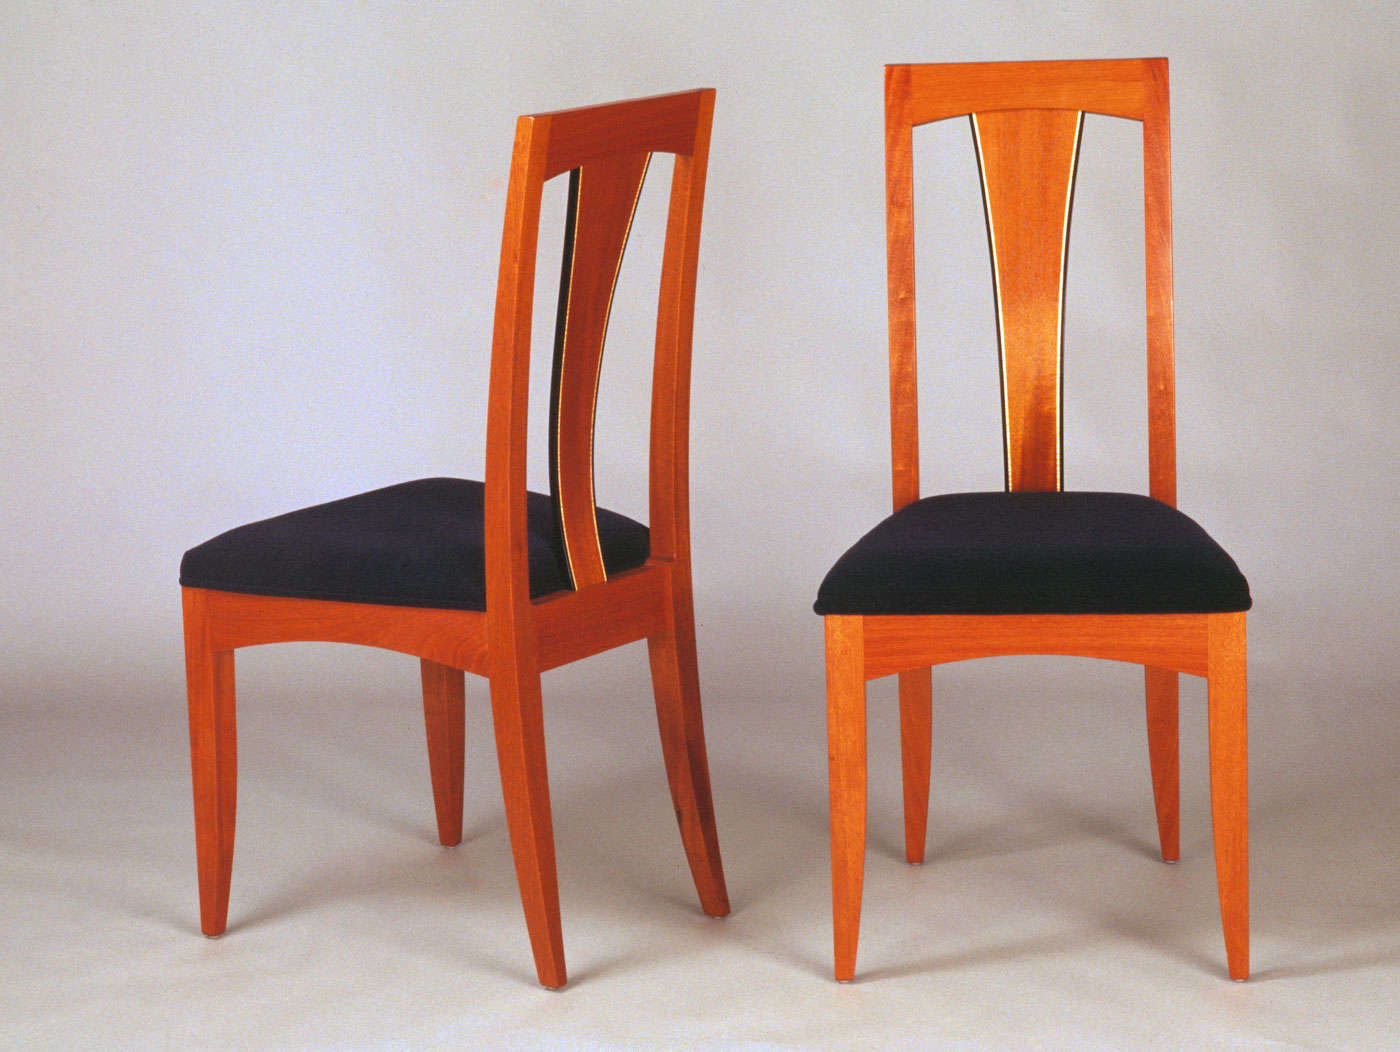 Mahogany dining chairs with inlay